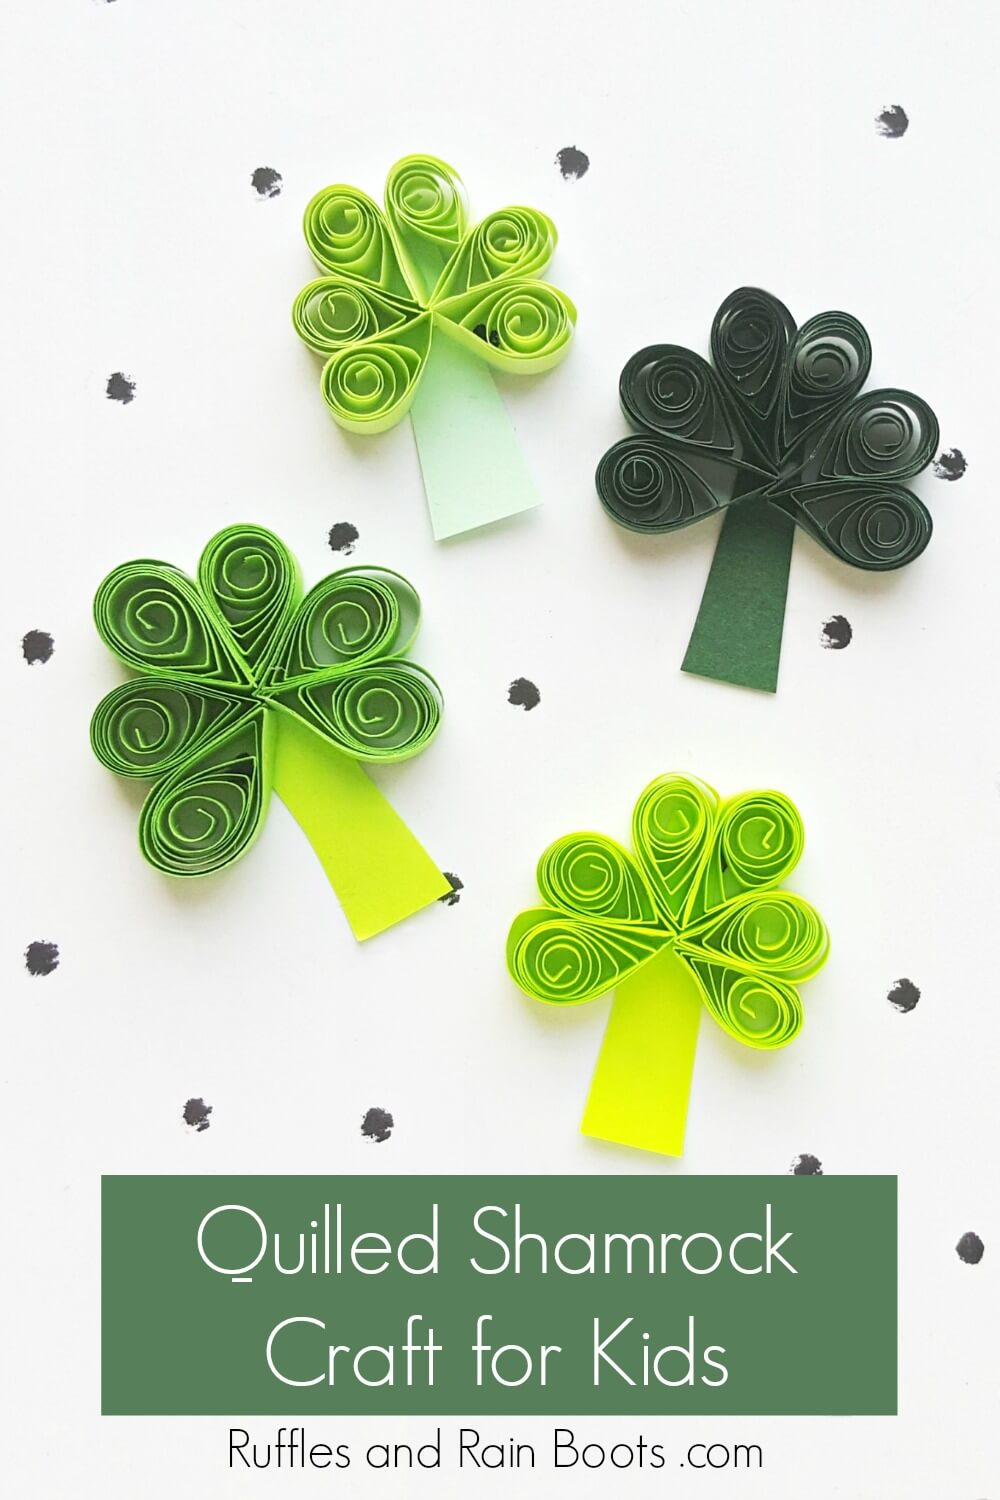 shamrocks on white background with text which reads quilled shamrock craft for kids